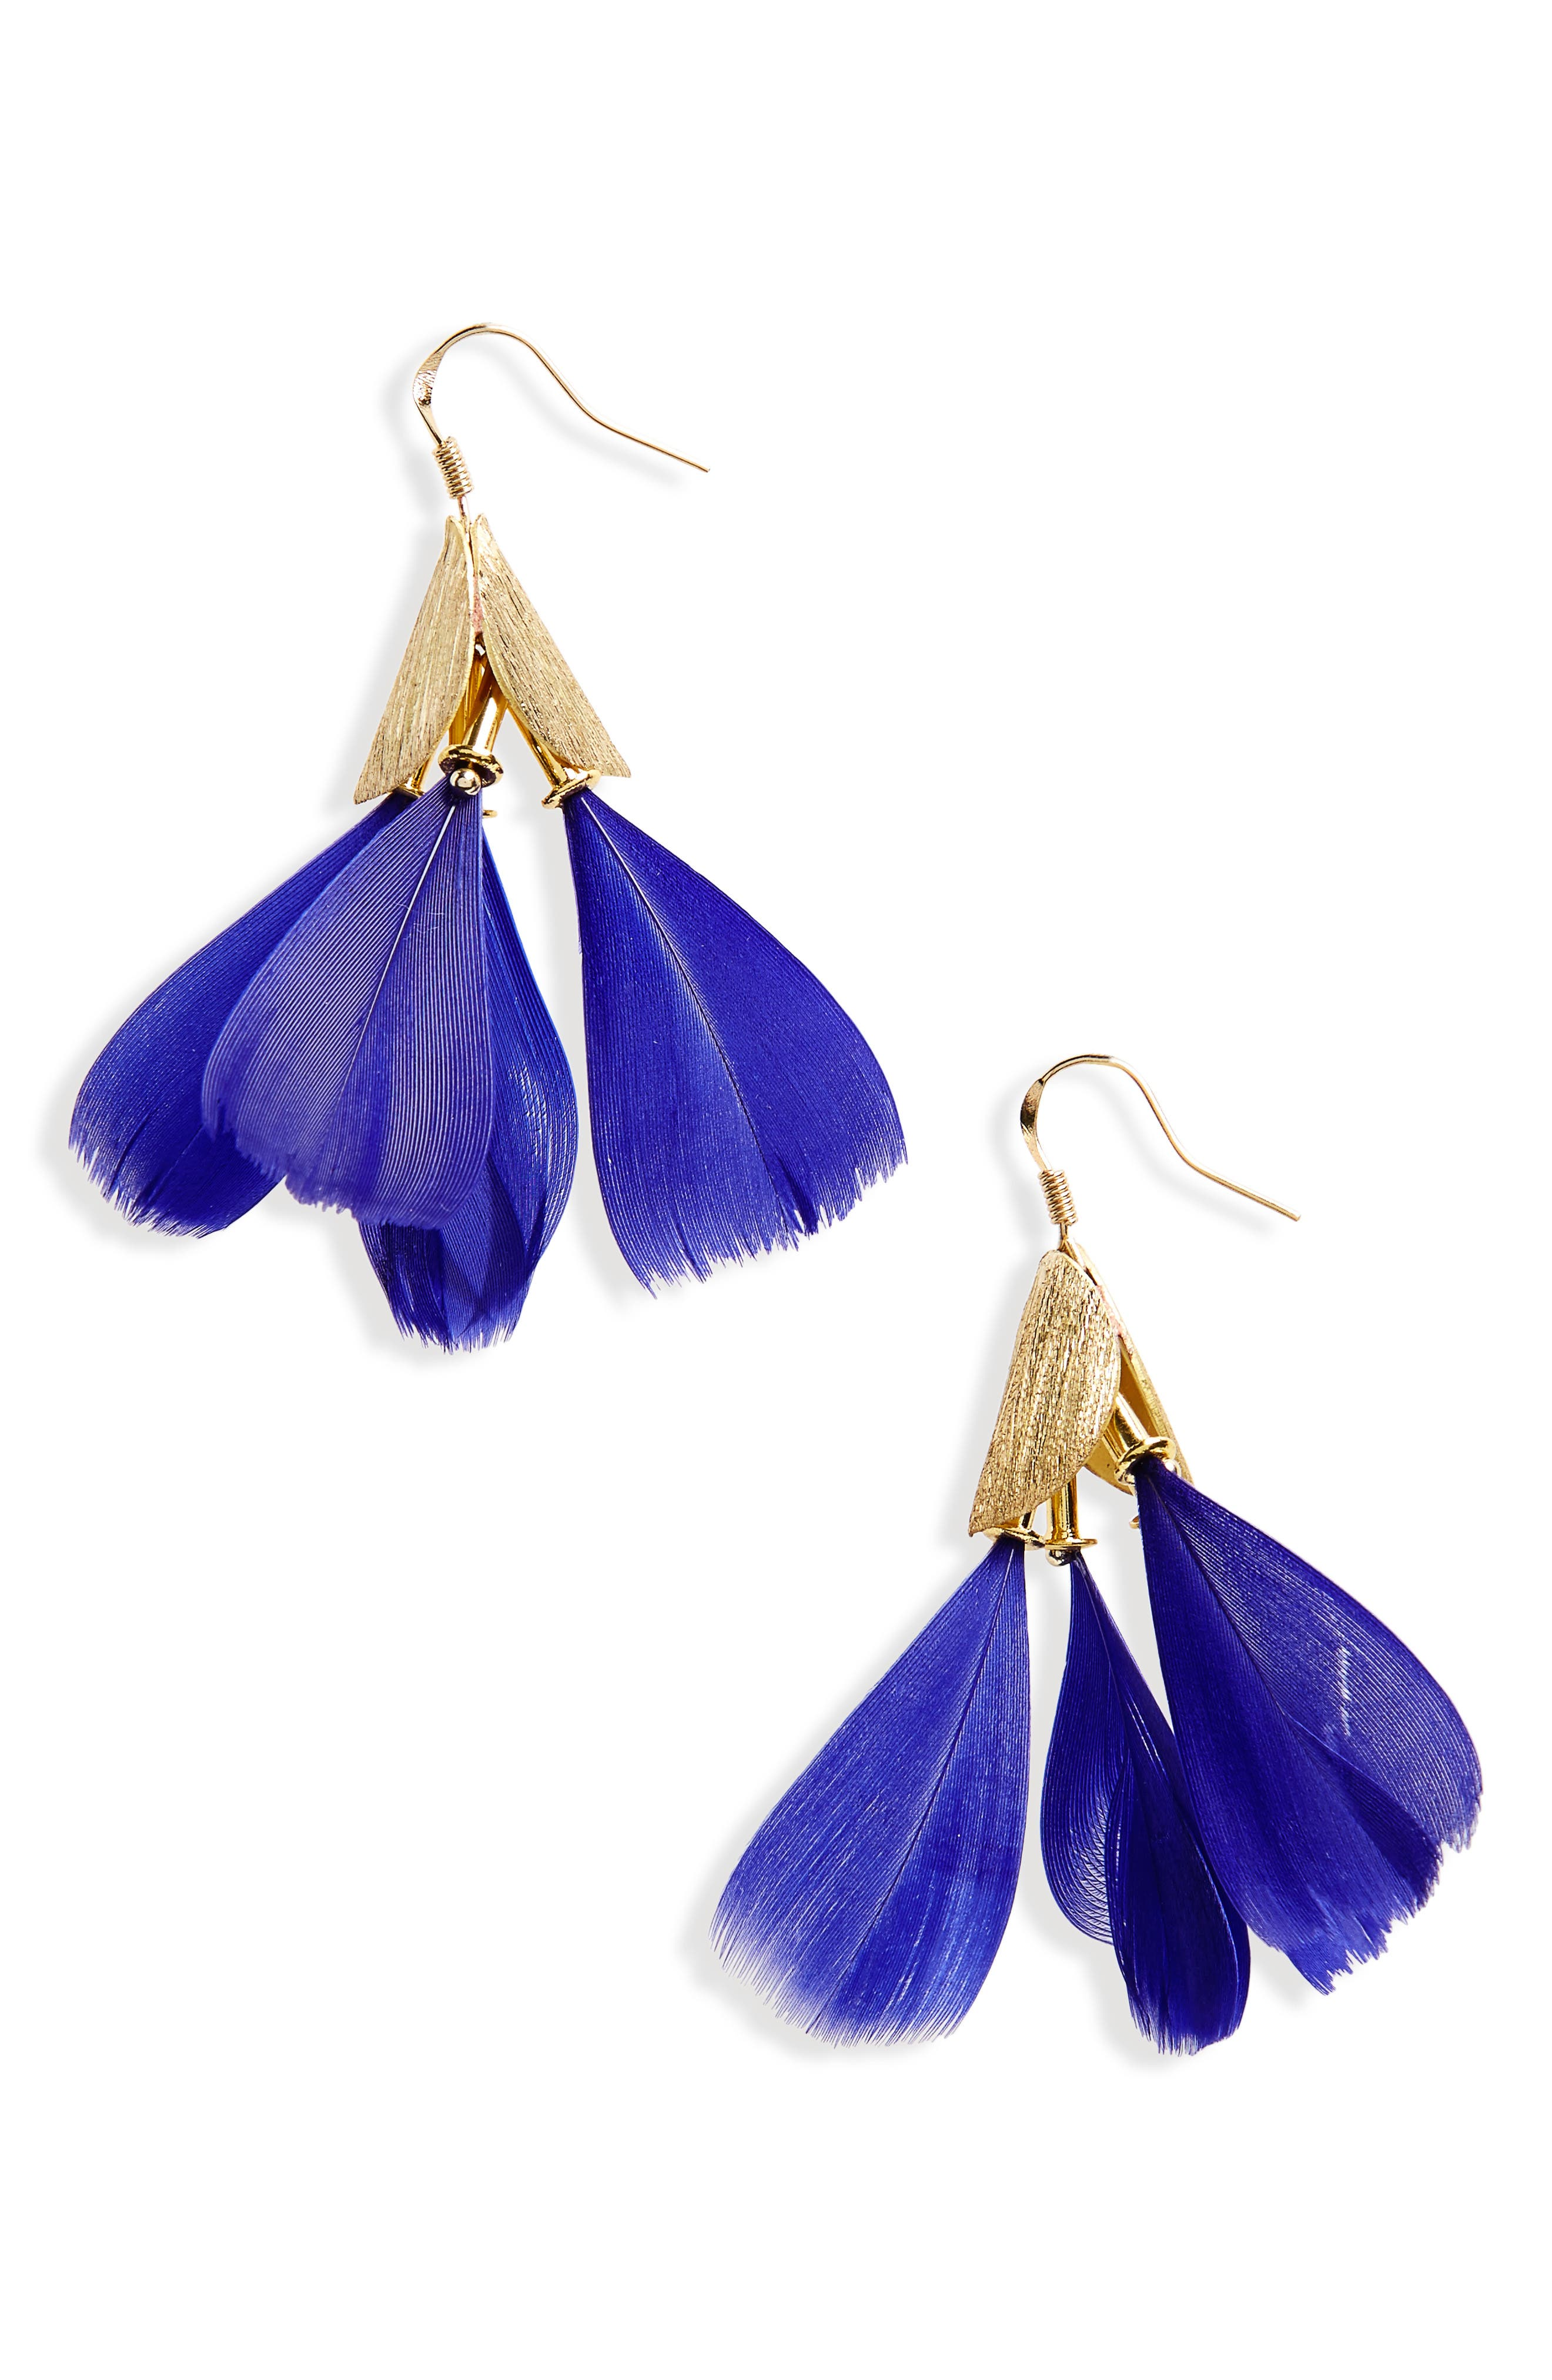 Dancing Feather Earrings,                             Main thumbnail 1, color,                             400